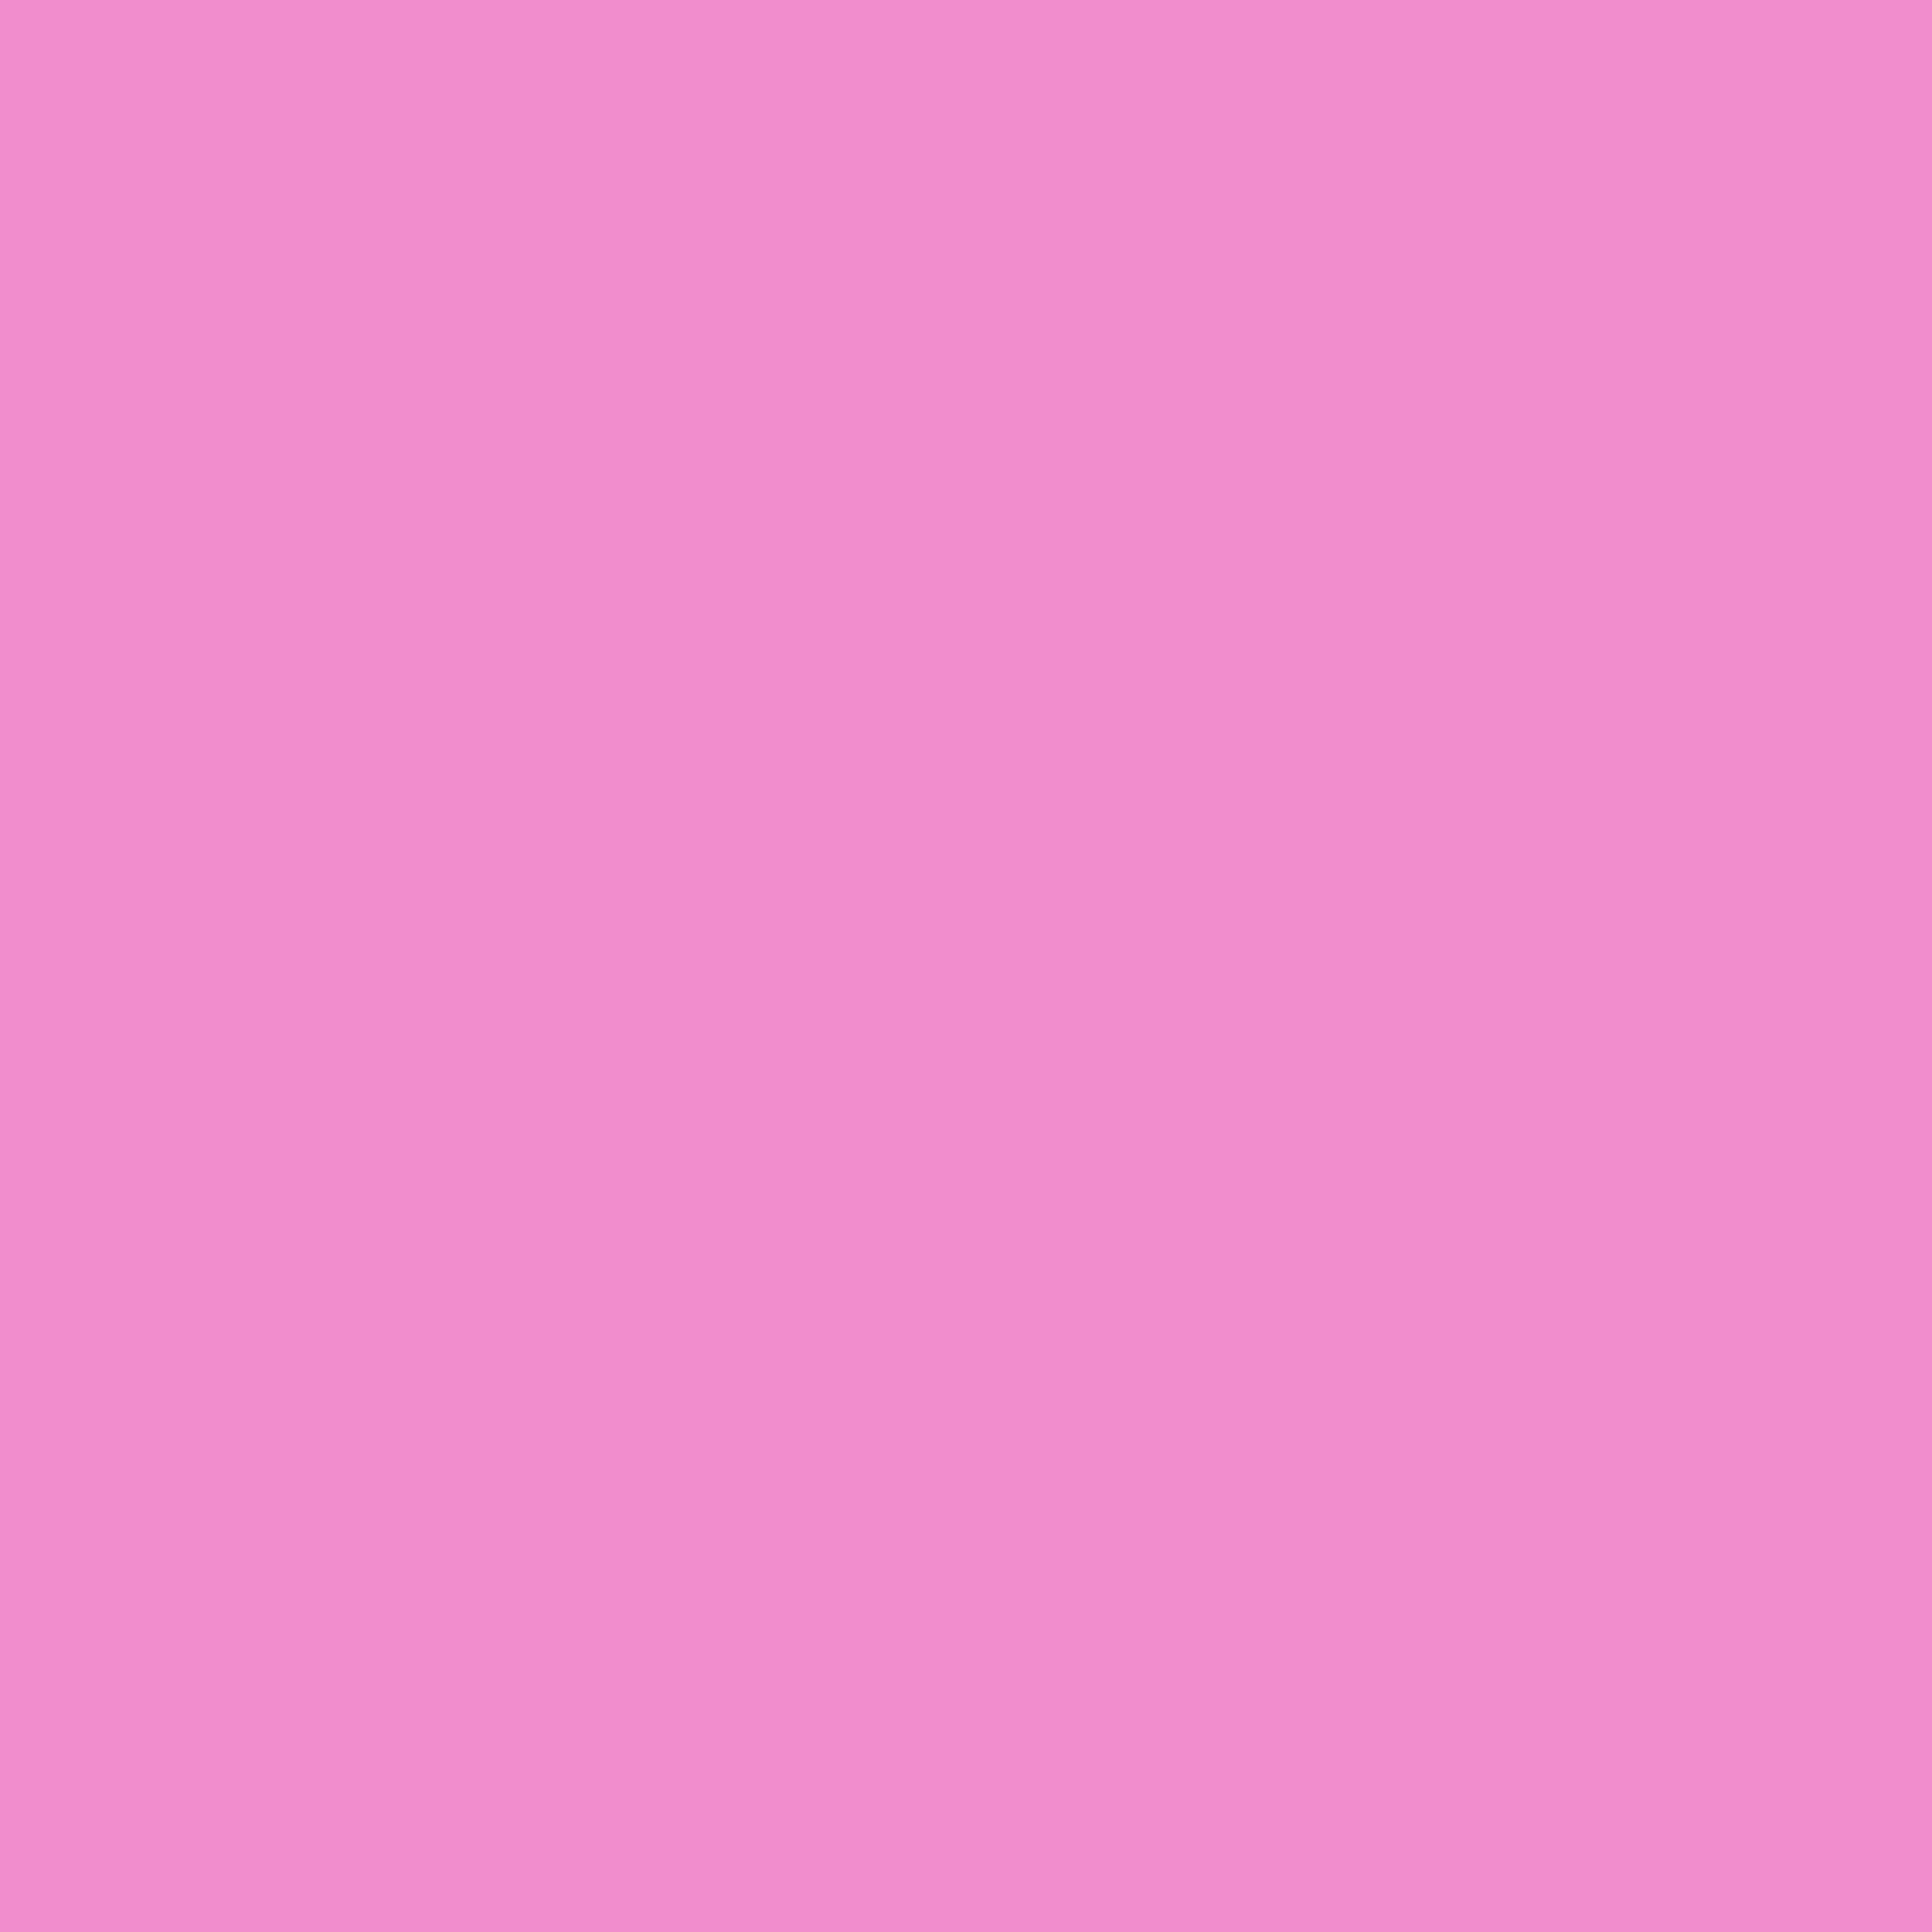 3600x3600 Orchid Pink Solid Color Background